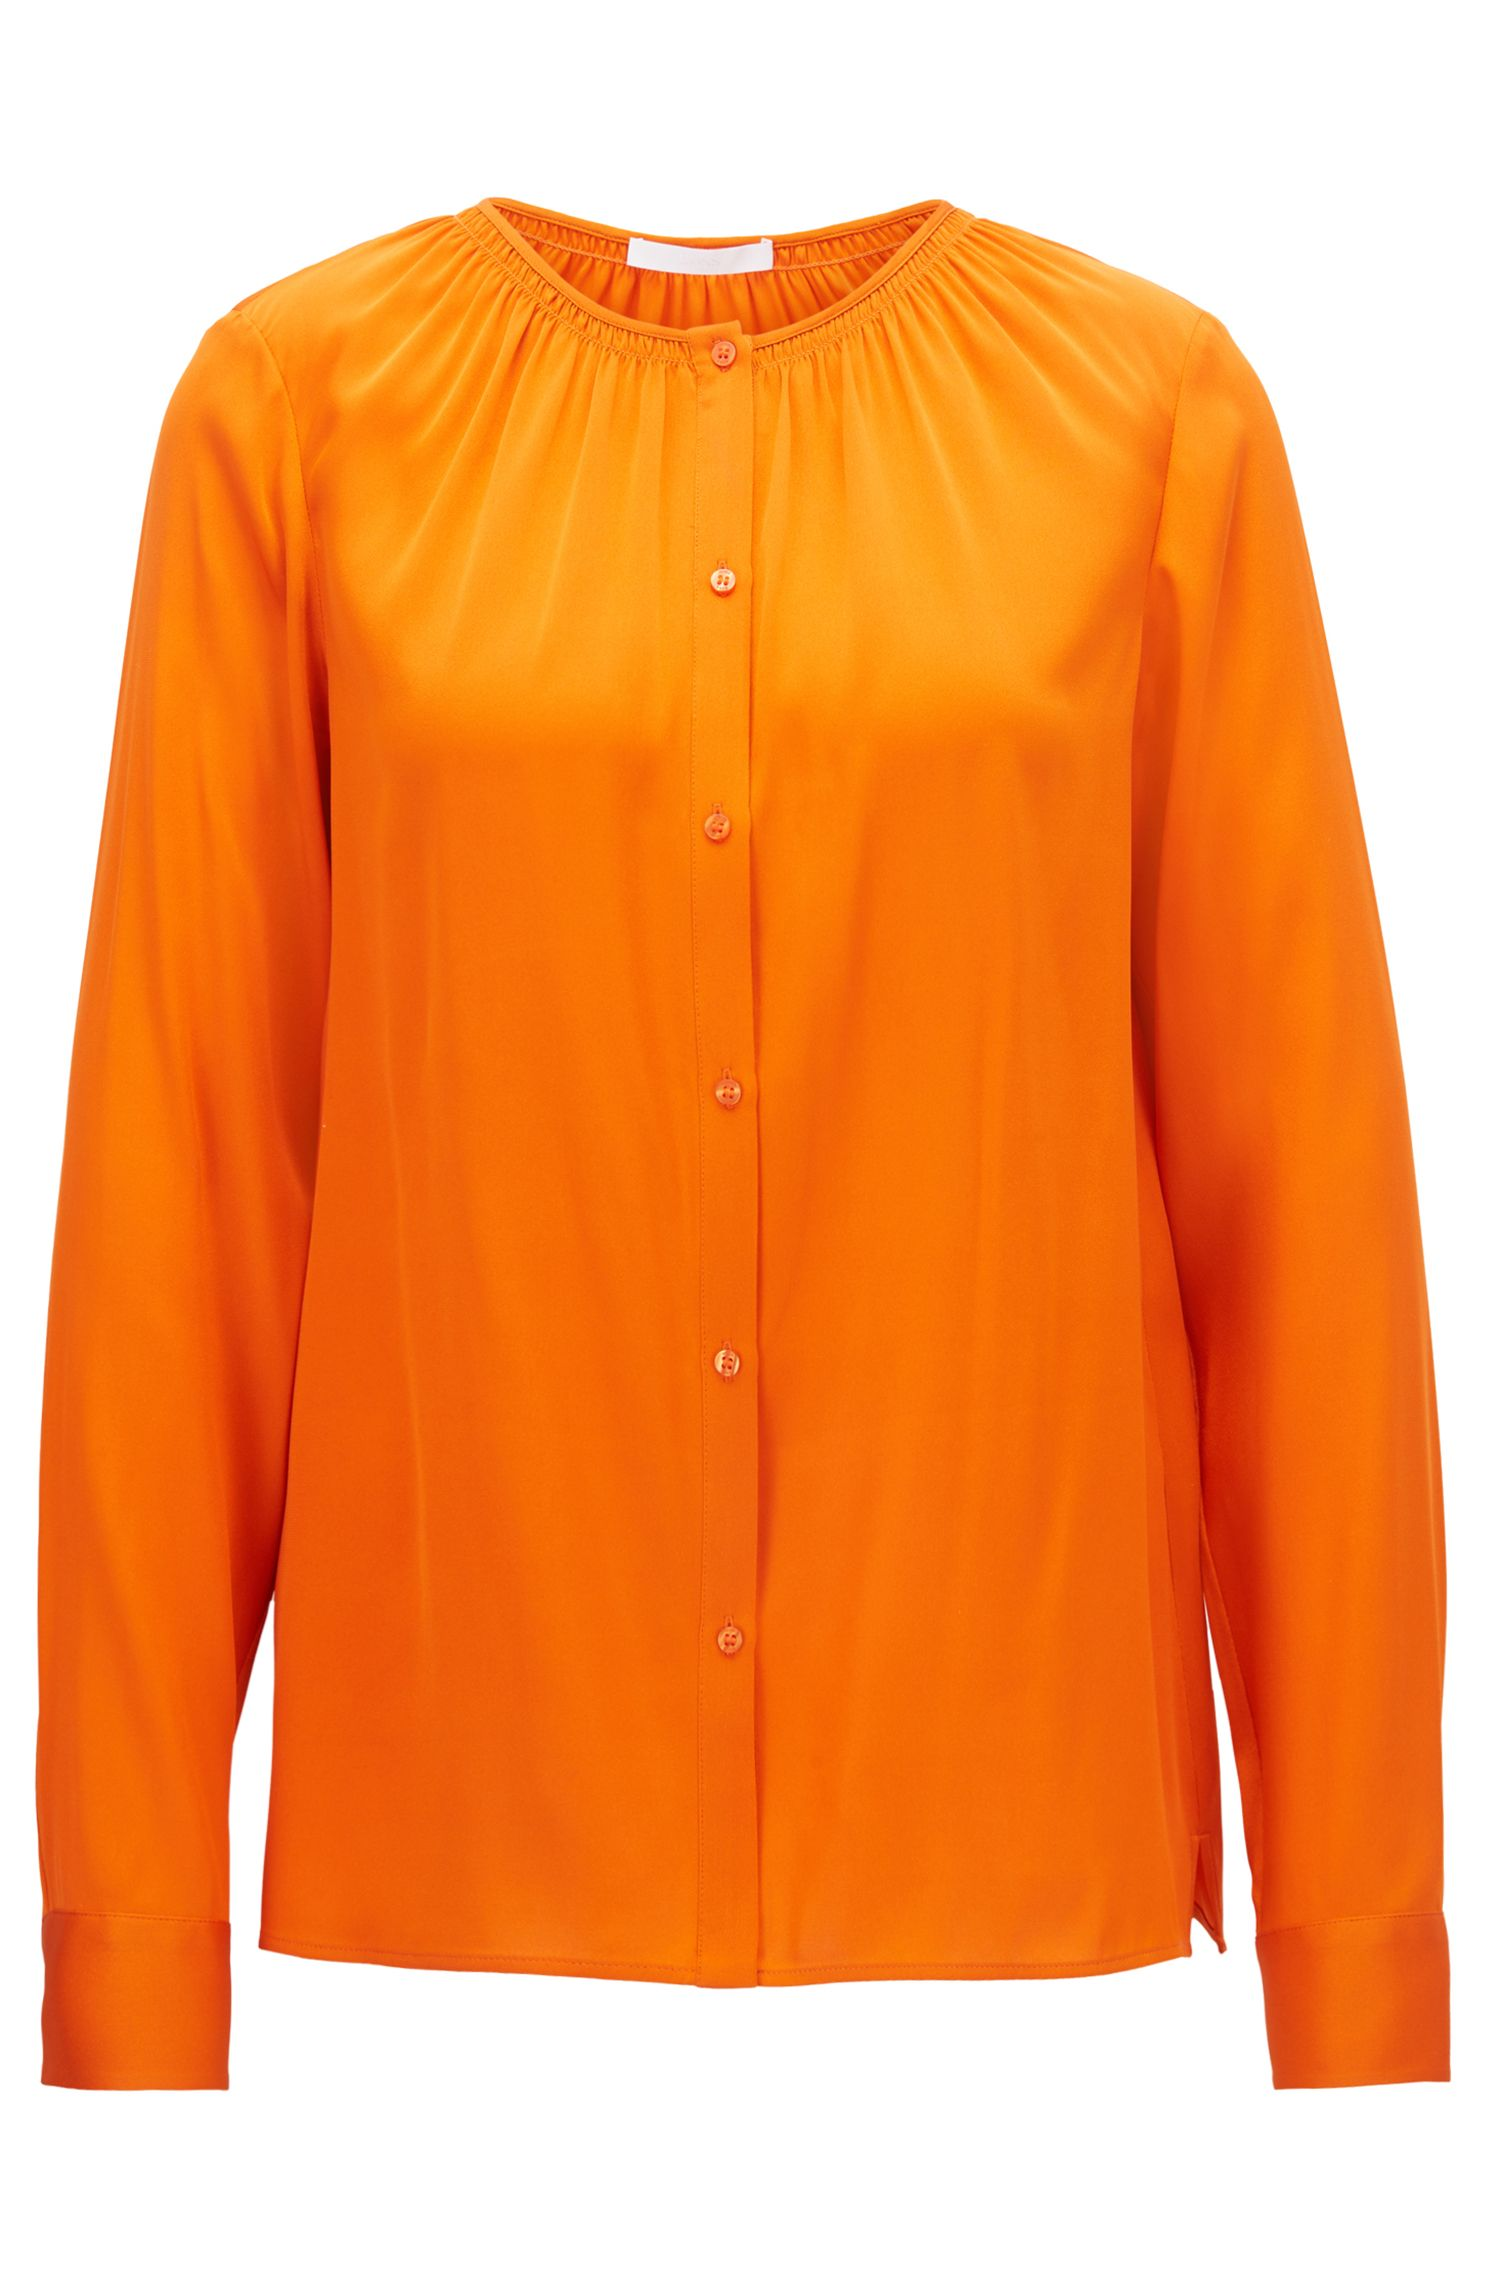 Crepe-de-chine blouse with smocked neckline